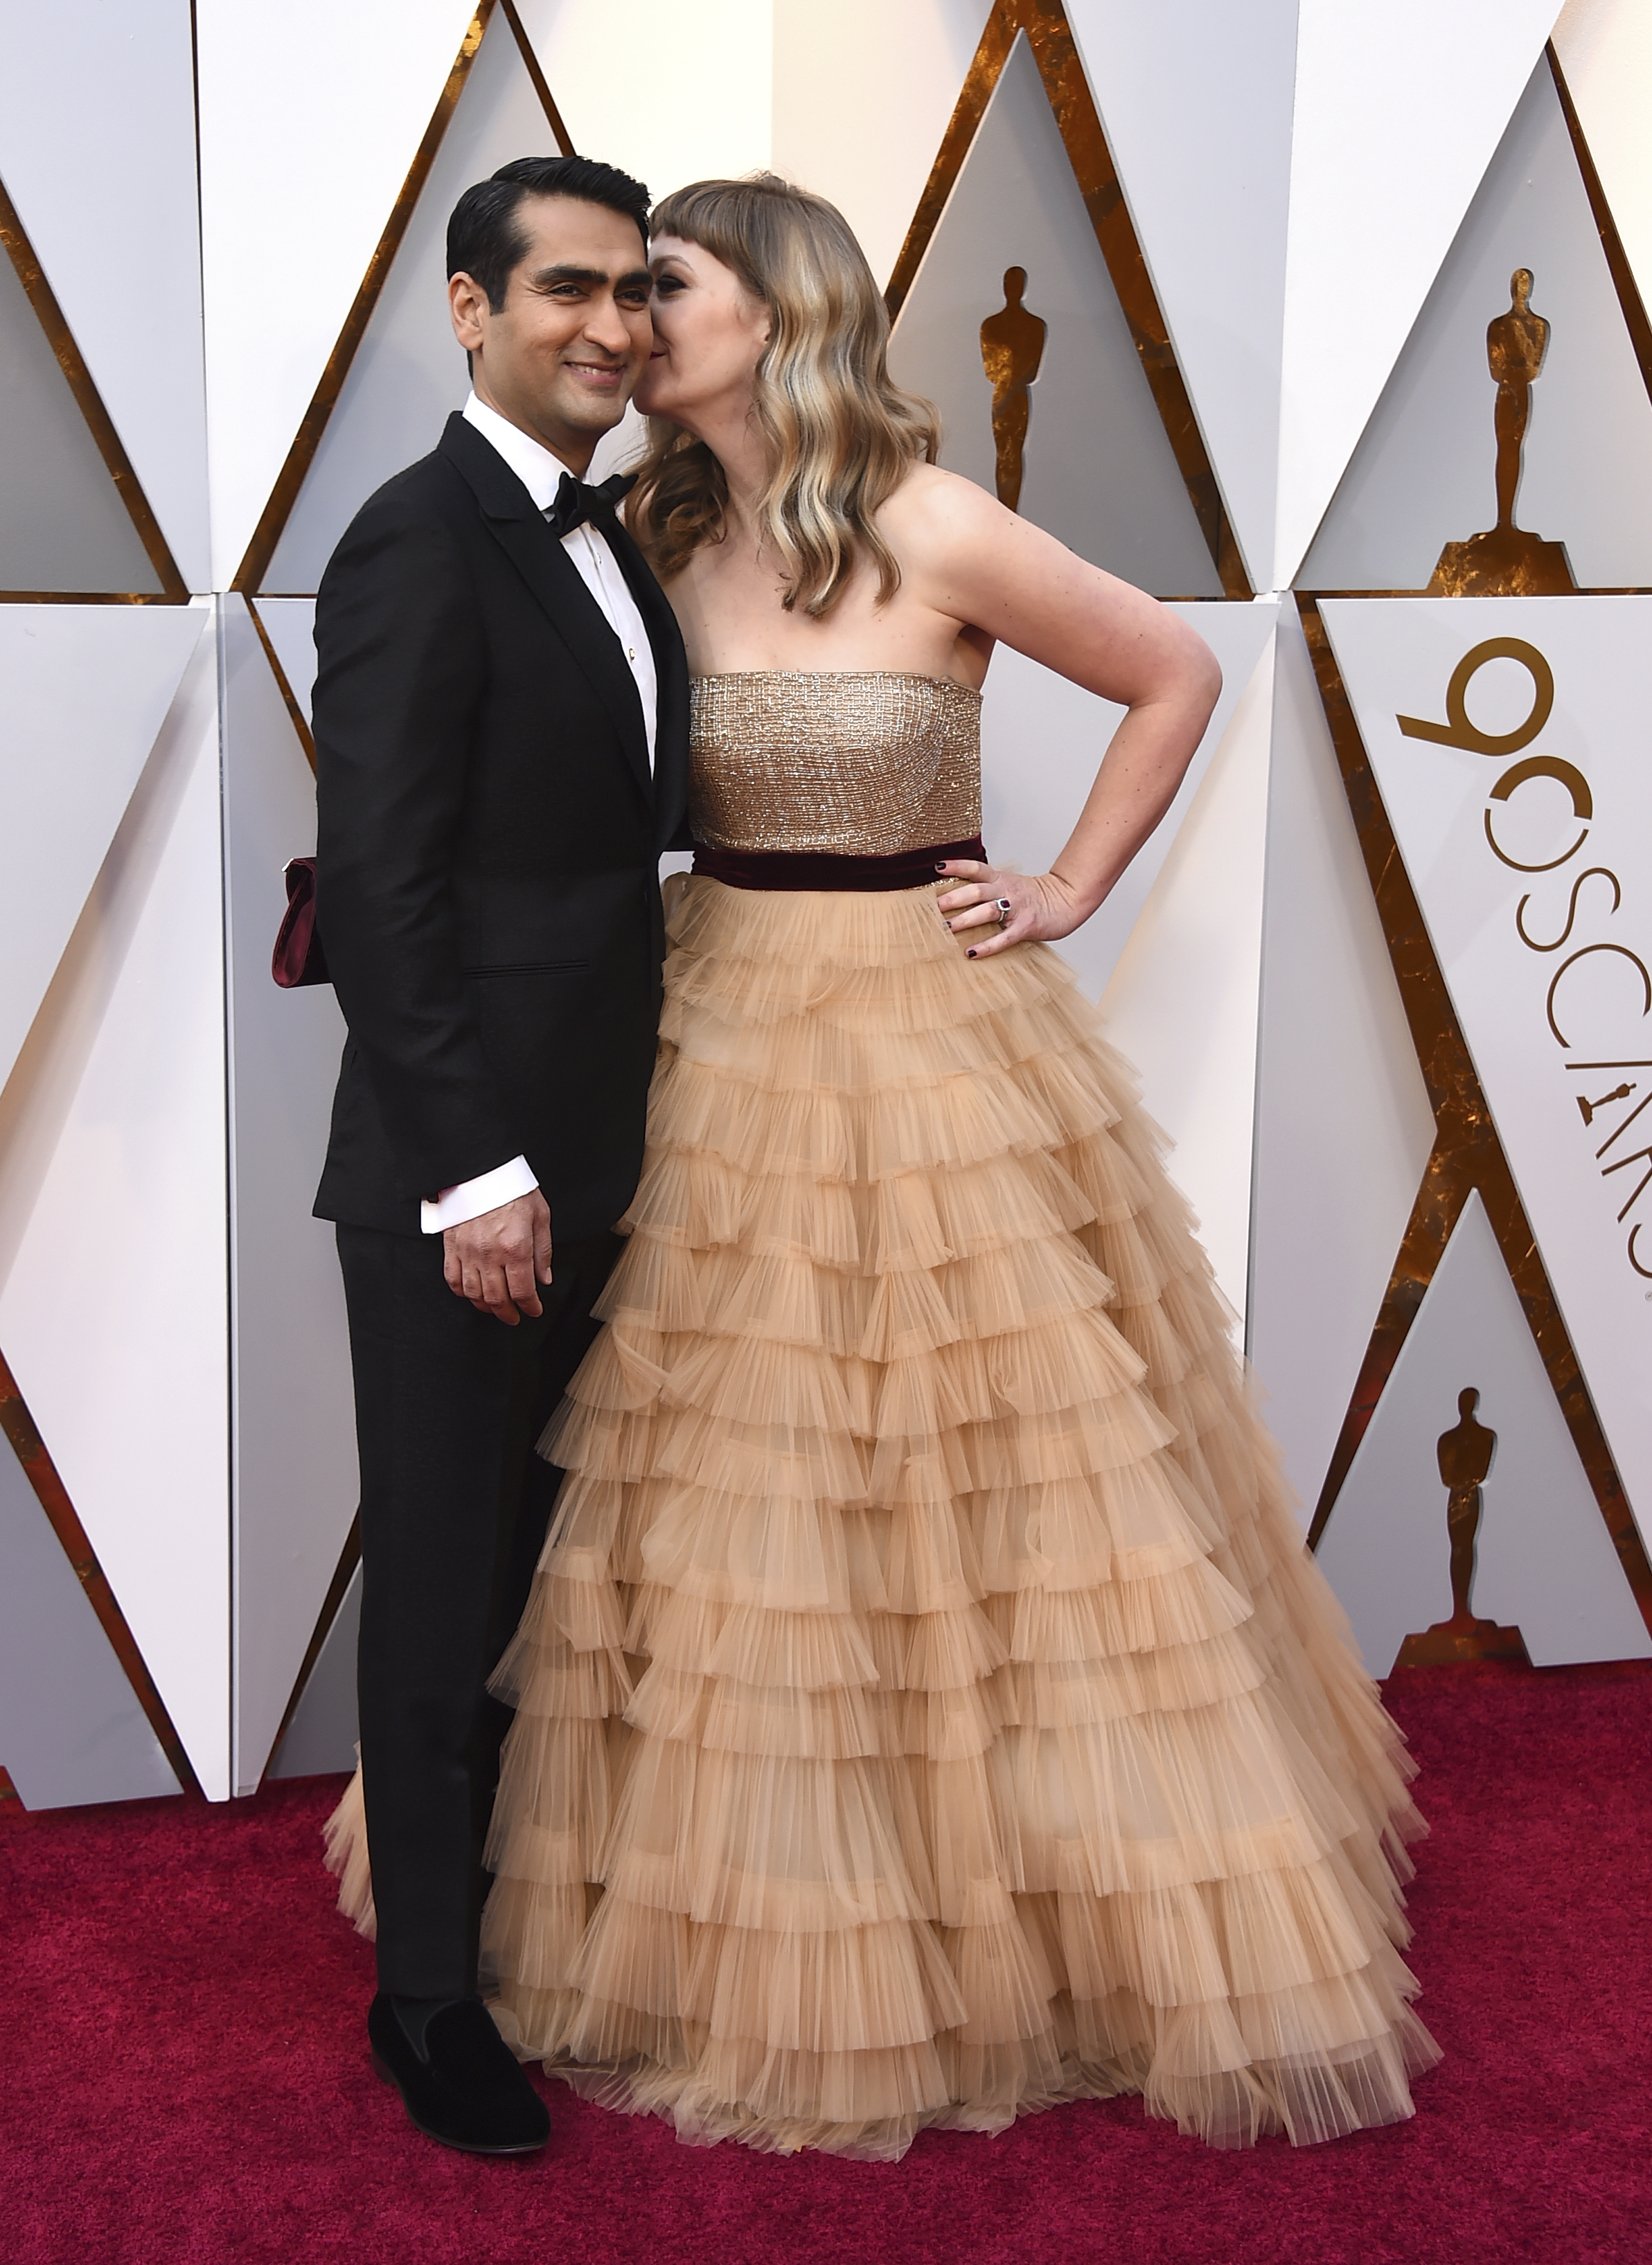 <div class='meta'><div class='origin-logo' data-origin='none'></div><span class='caption-text' data-credit='Jordan Strauss/Invision/AP'>Kumail Nanjiani, left, and Emily V. Gordon, nominated for writing ''The Big Sick,'' arrive at the Oscars on Sunday, March 4, 2018, at the Dolby Theatre in Los Angeles.</span></div>